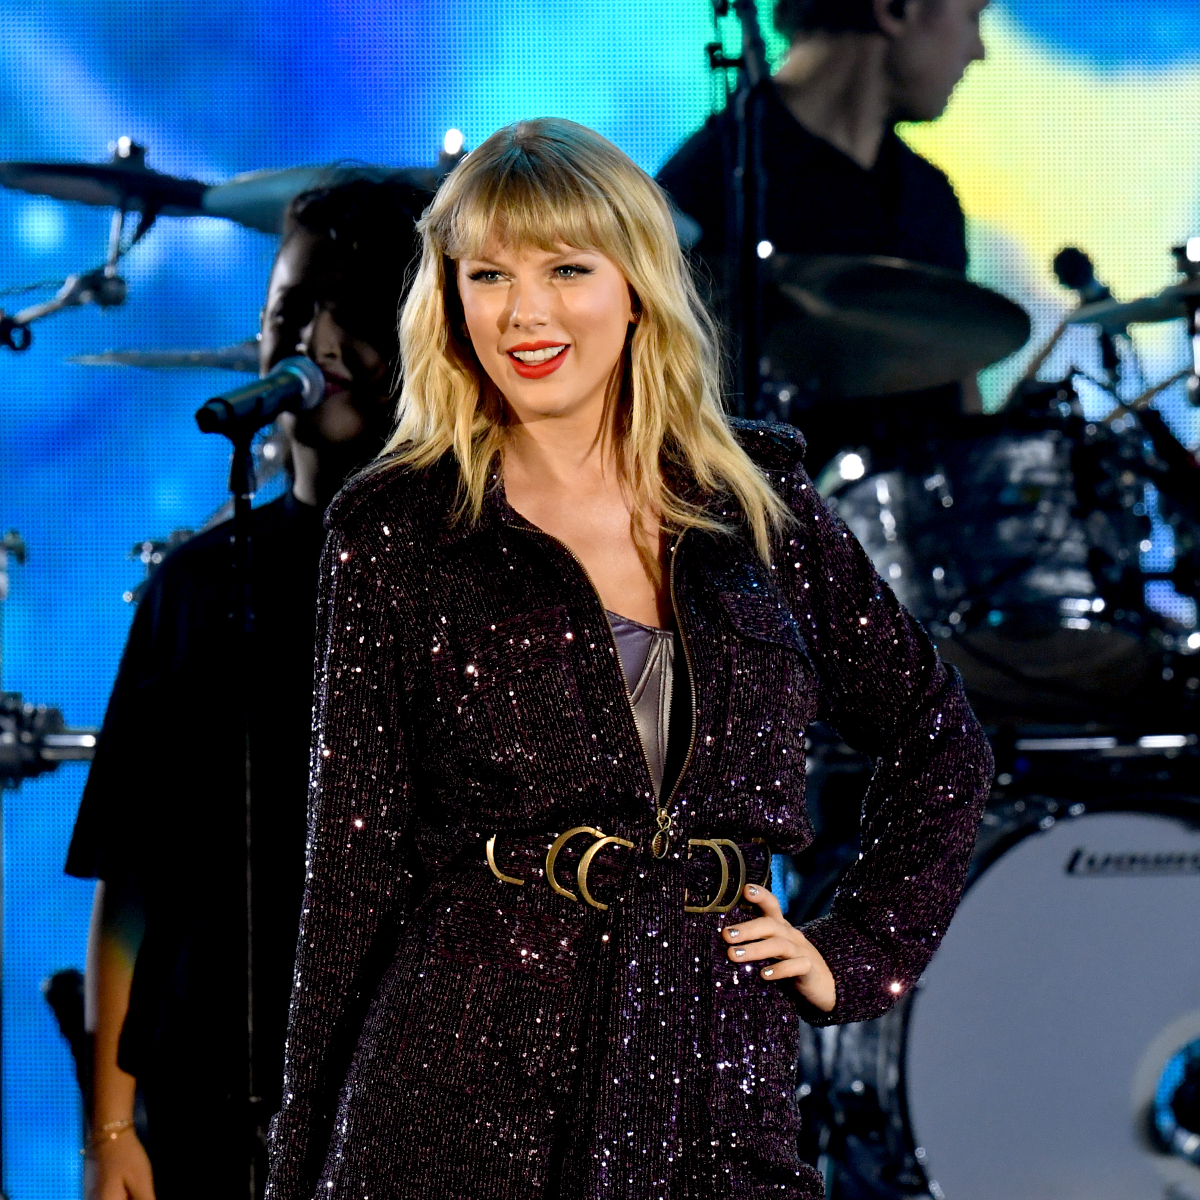 Taylor Swift can NOW perform her old songs at the upcoming 2019 American Music Awards; Deets Inside